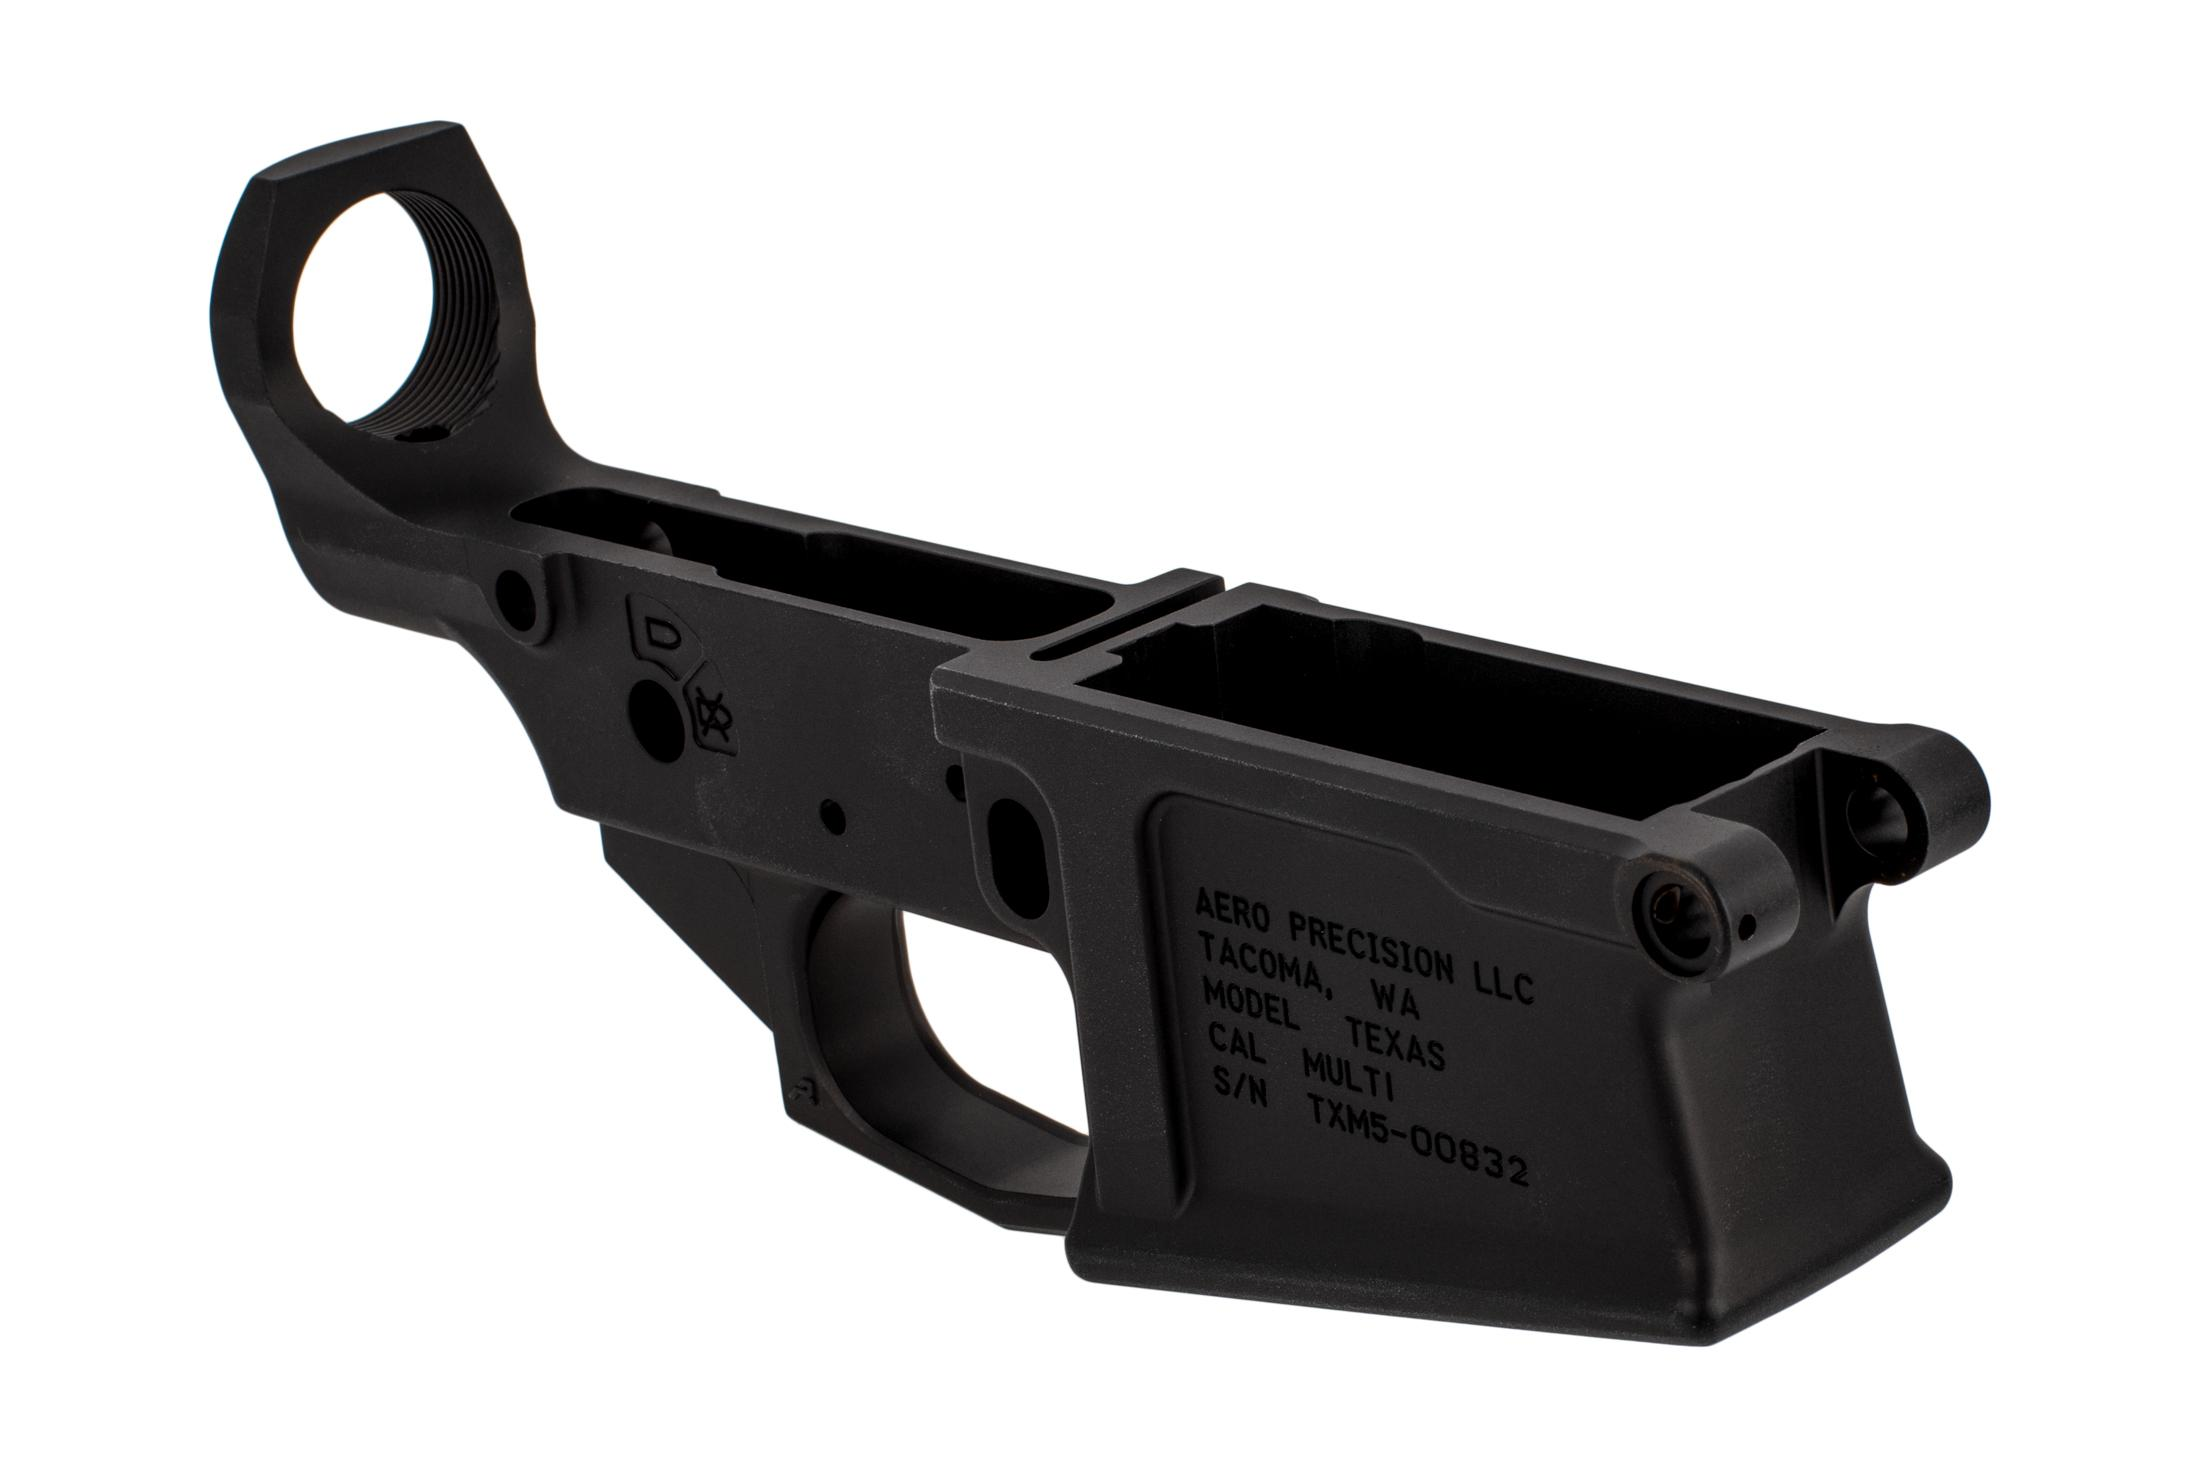 Aero Precision Texas M5 stripped lower receivers are multi-caliber marked with a tough black finish